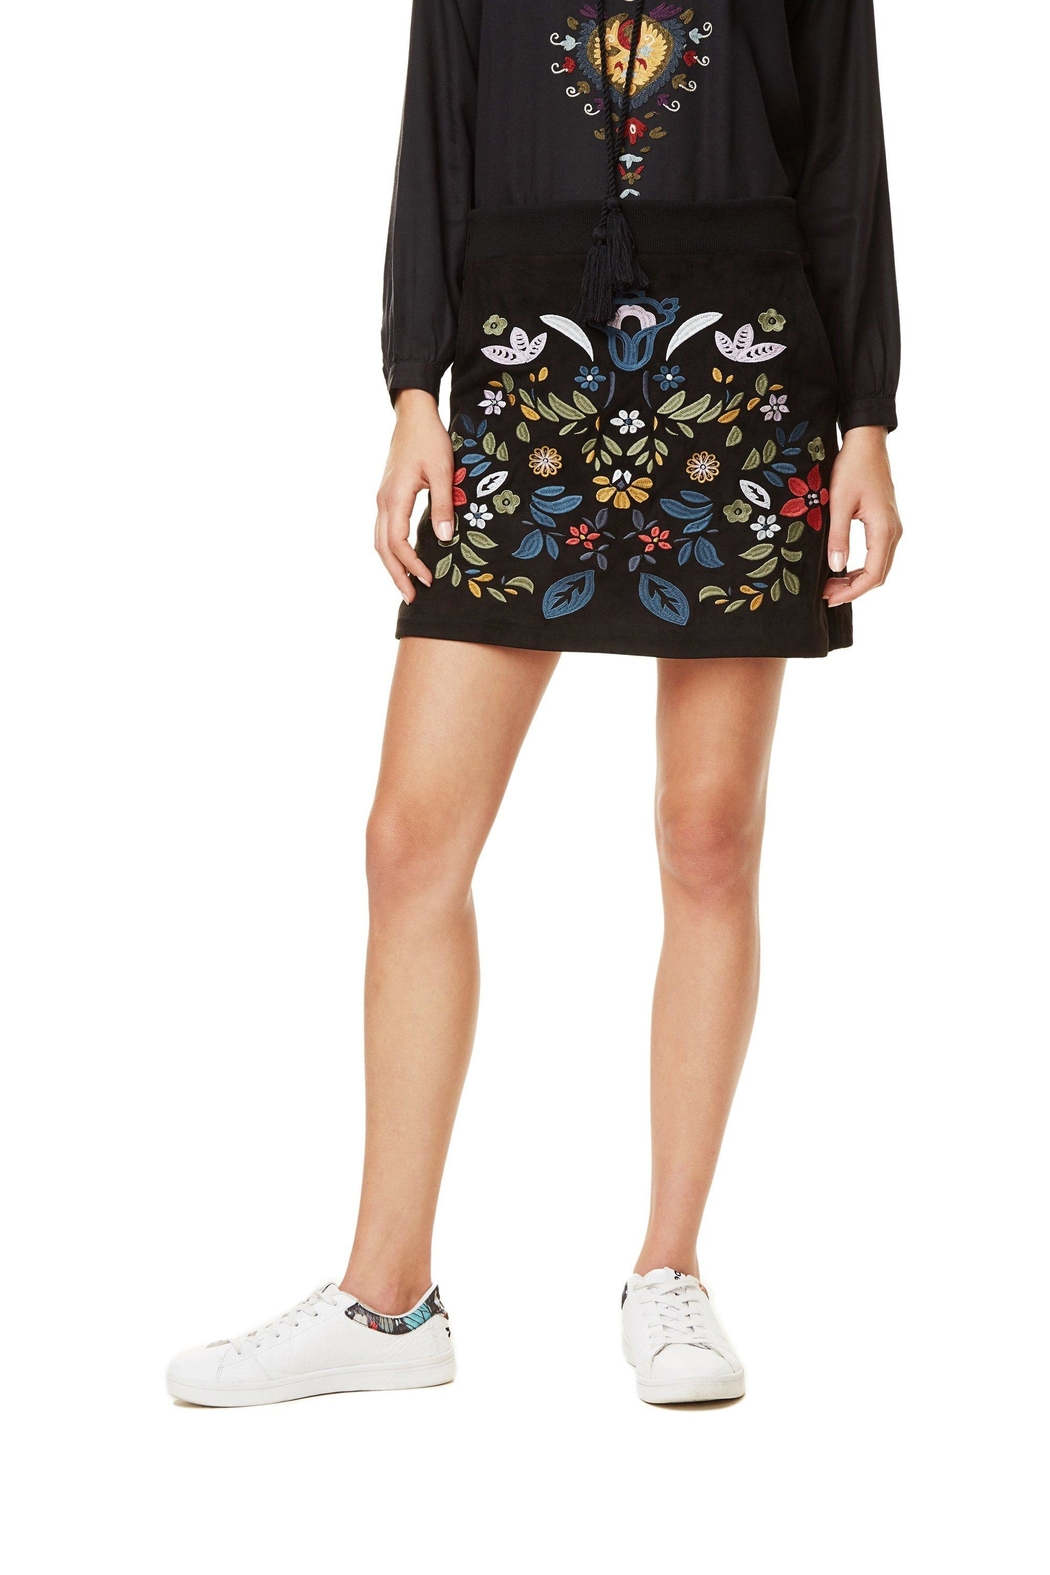 DESIGUAL Ariadna Embroidered Skirt - Main Image